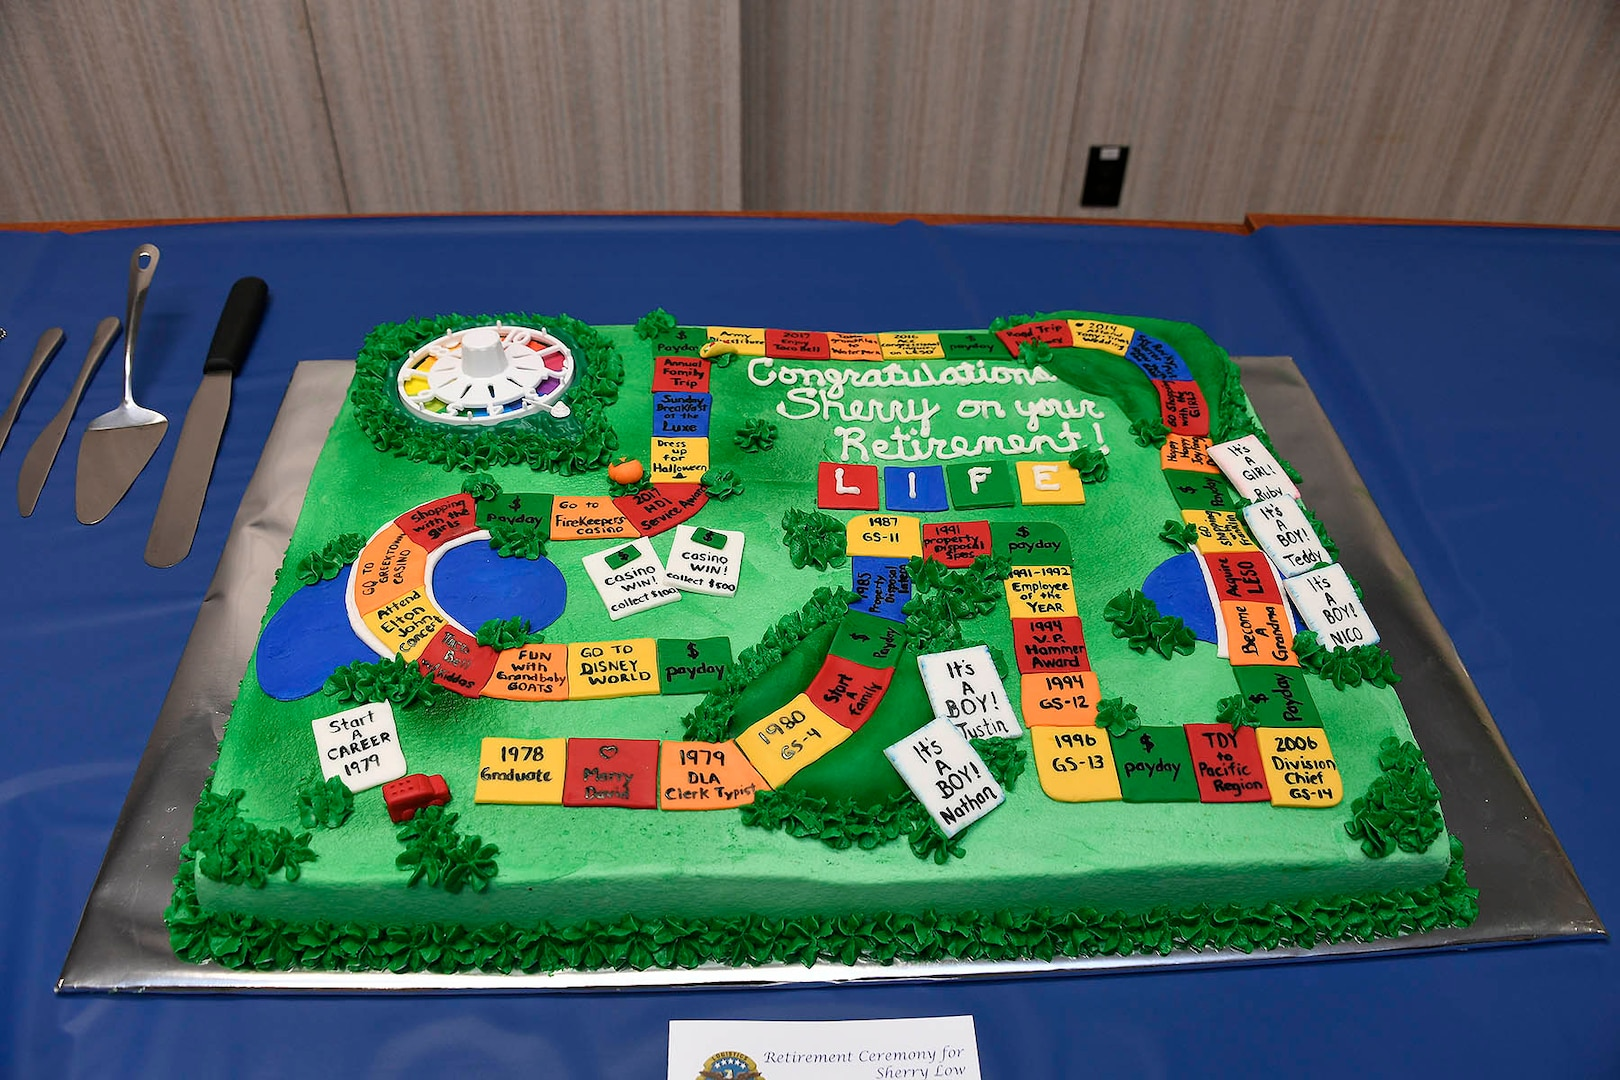 cake made to look like the board game life